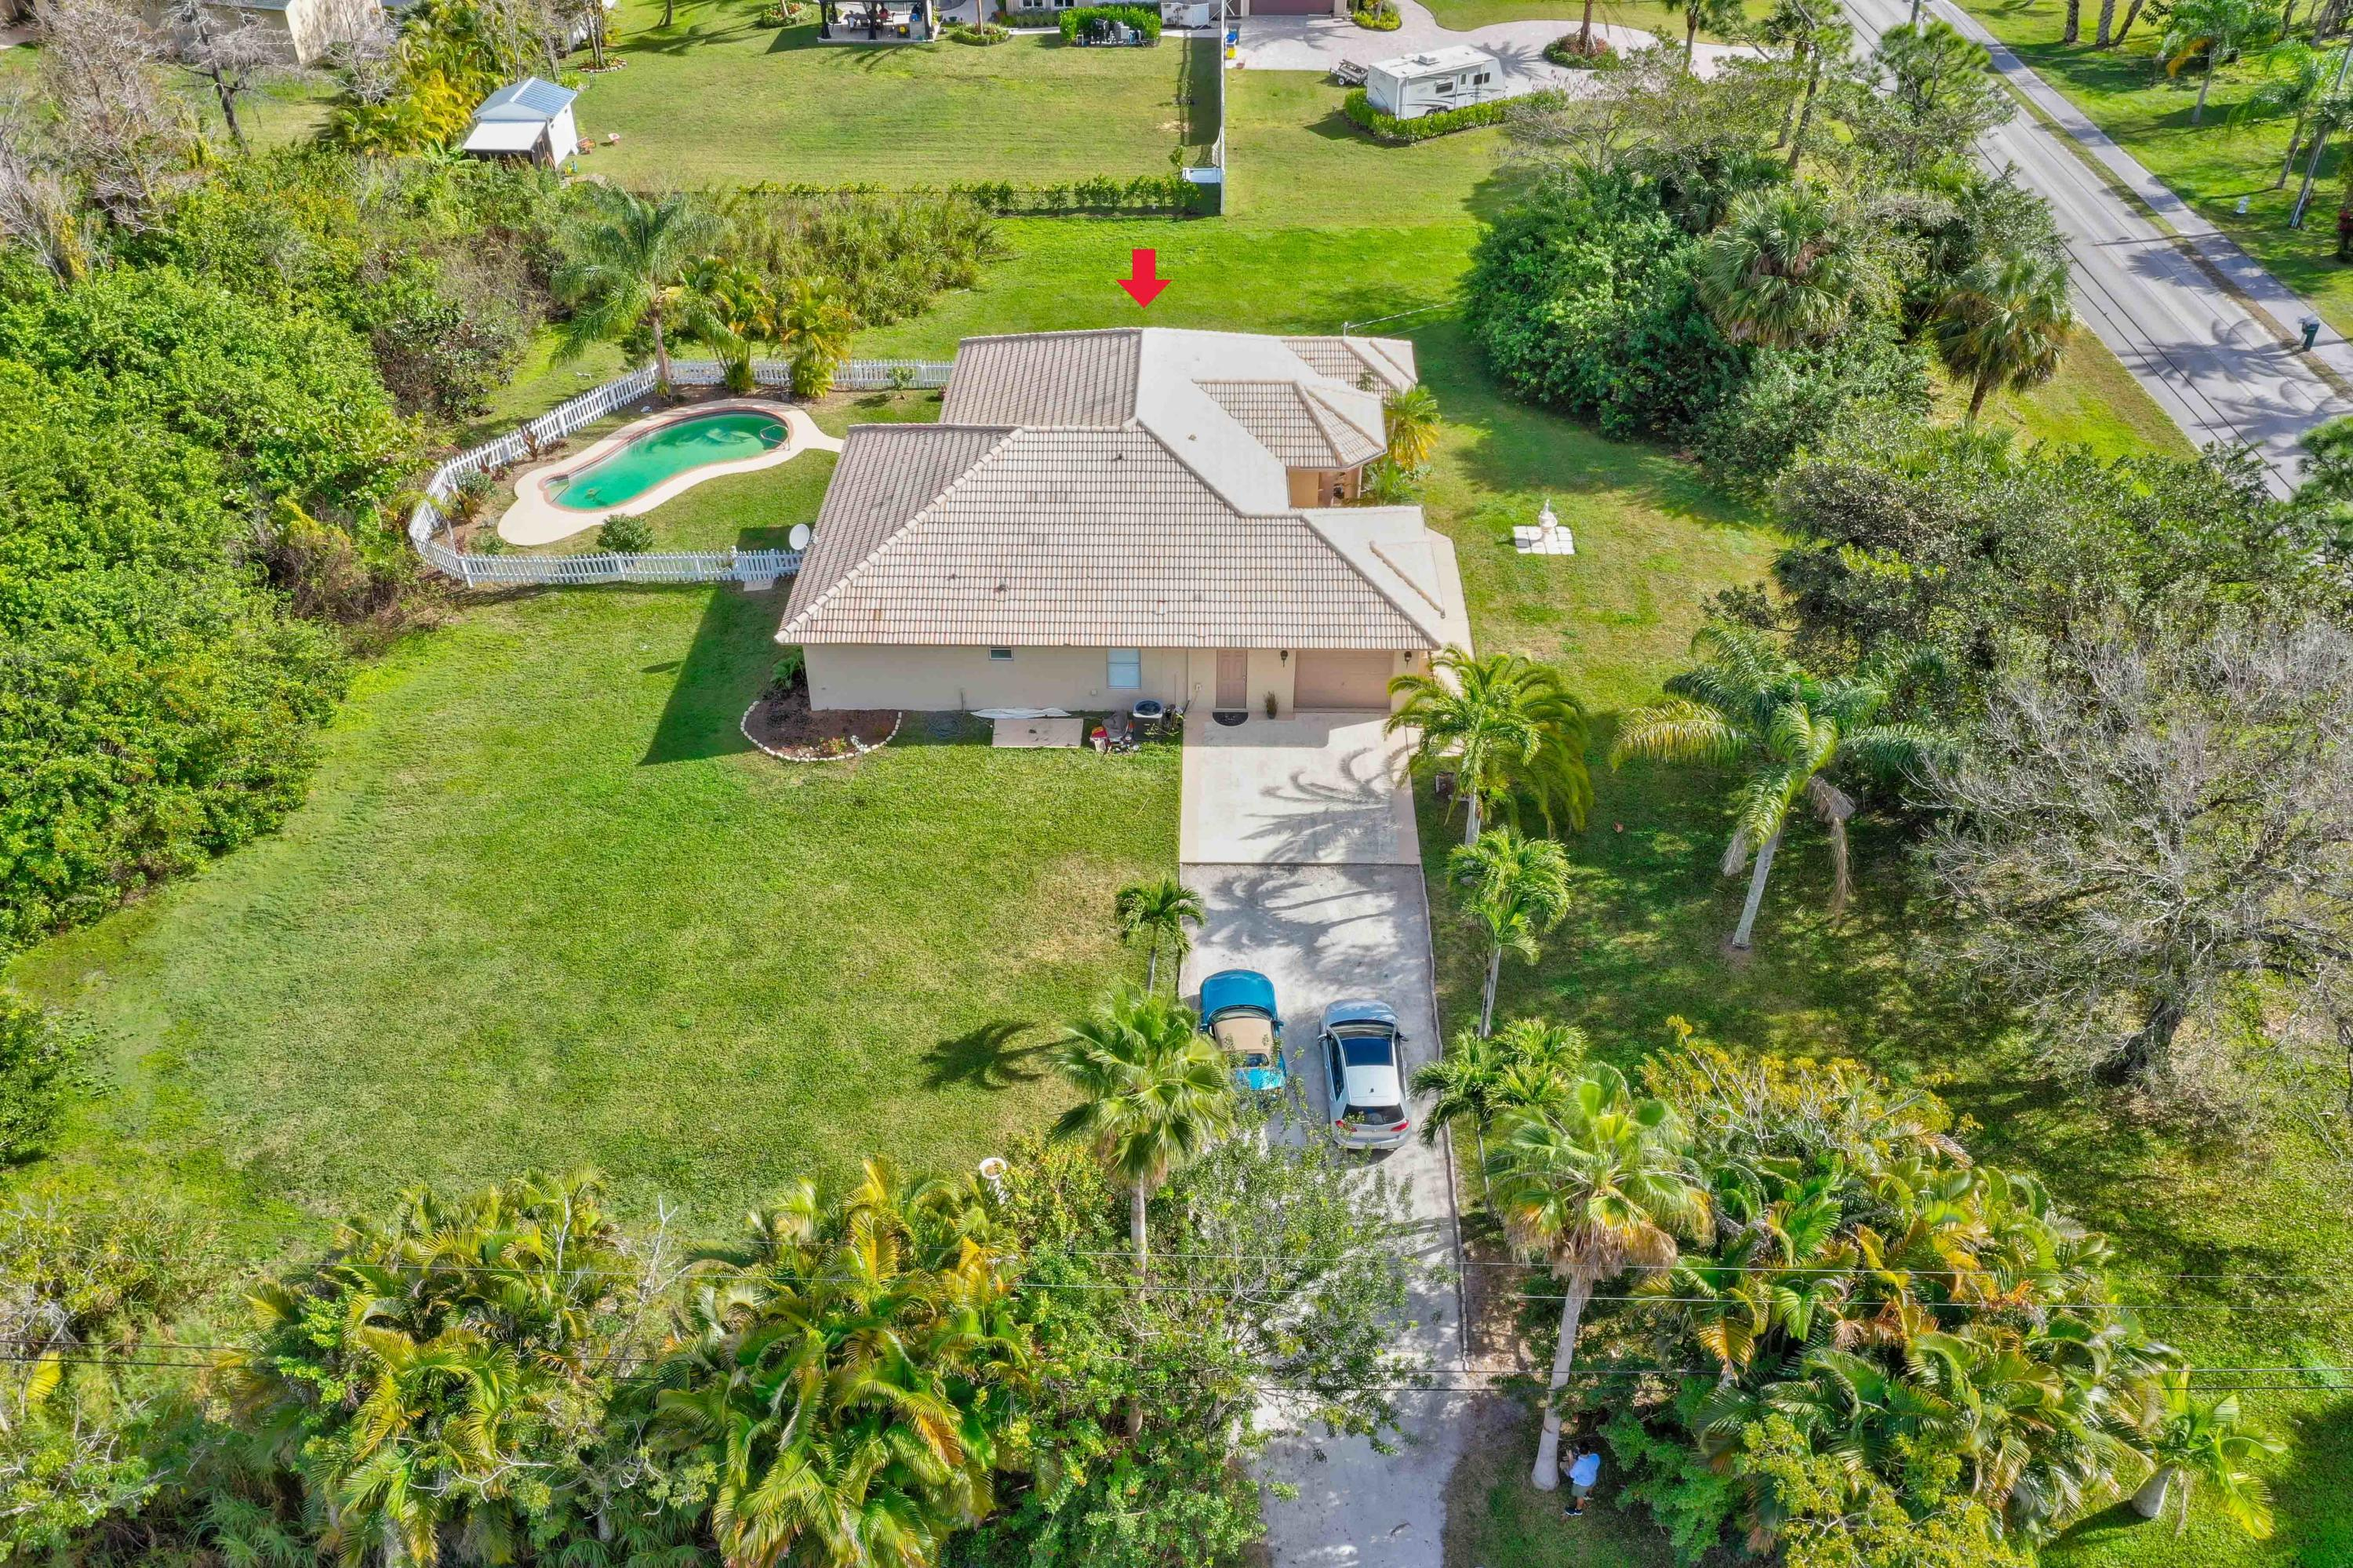 SHORT TERM OK FURNISHED OR UNFURNISHEDBeautiful   Pool home  in a country setting pictures updated since pictures were taken  pool is crystal clear yet beach ,shops, airport ,golf, restaurants within all 5-15 min  .  All white cabinets !A rated schools Paved Rd,city water ,  jacuzzi , 1.5 acre land available immediately  2 car grg